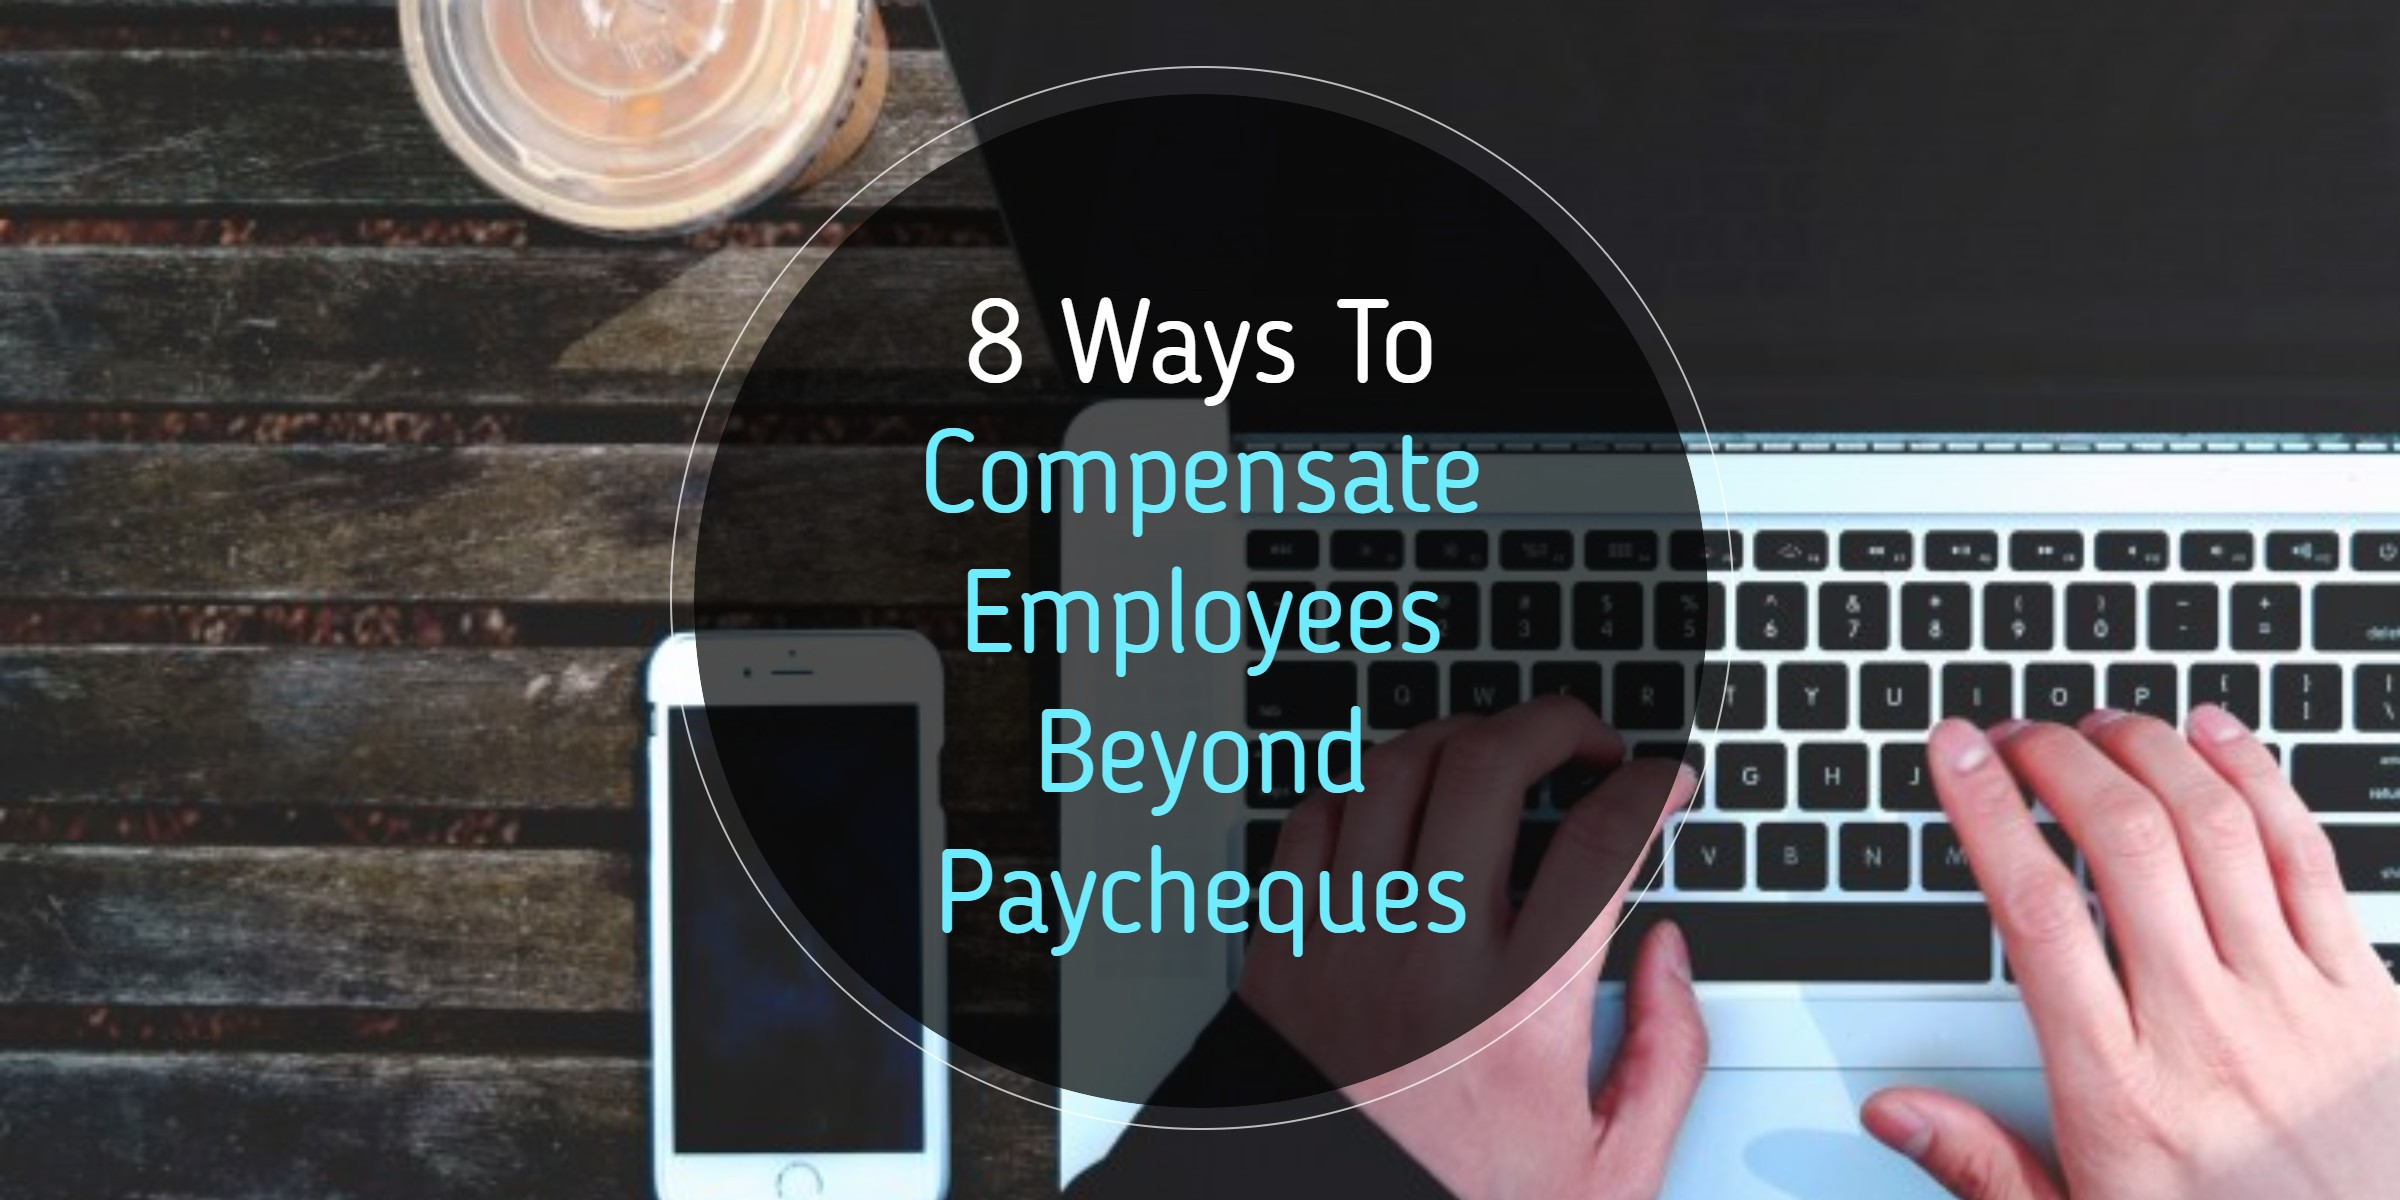 8 Ways To Compensate Employees Beyond Paycheques